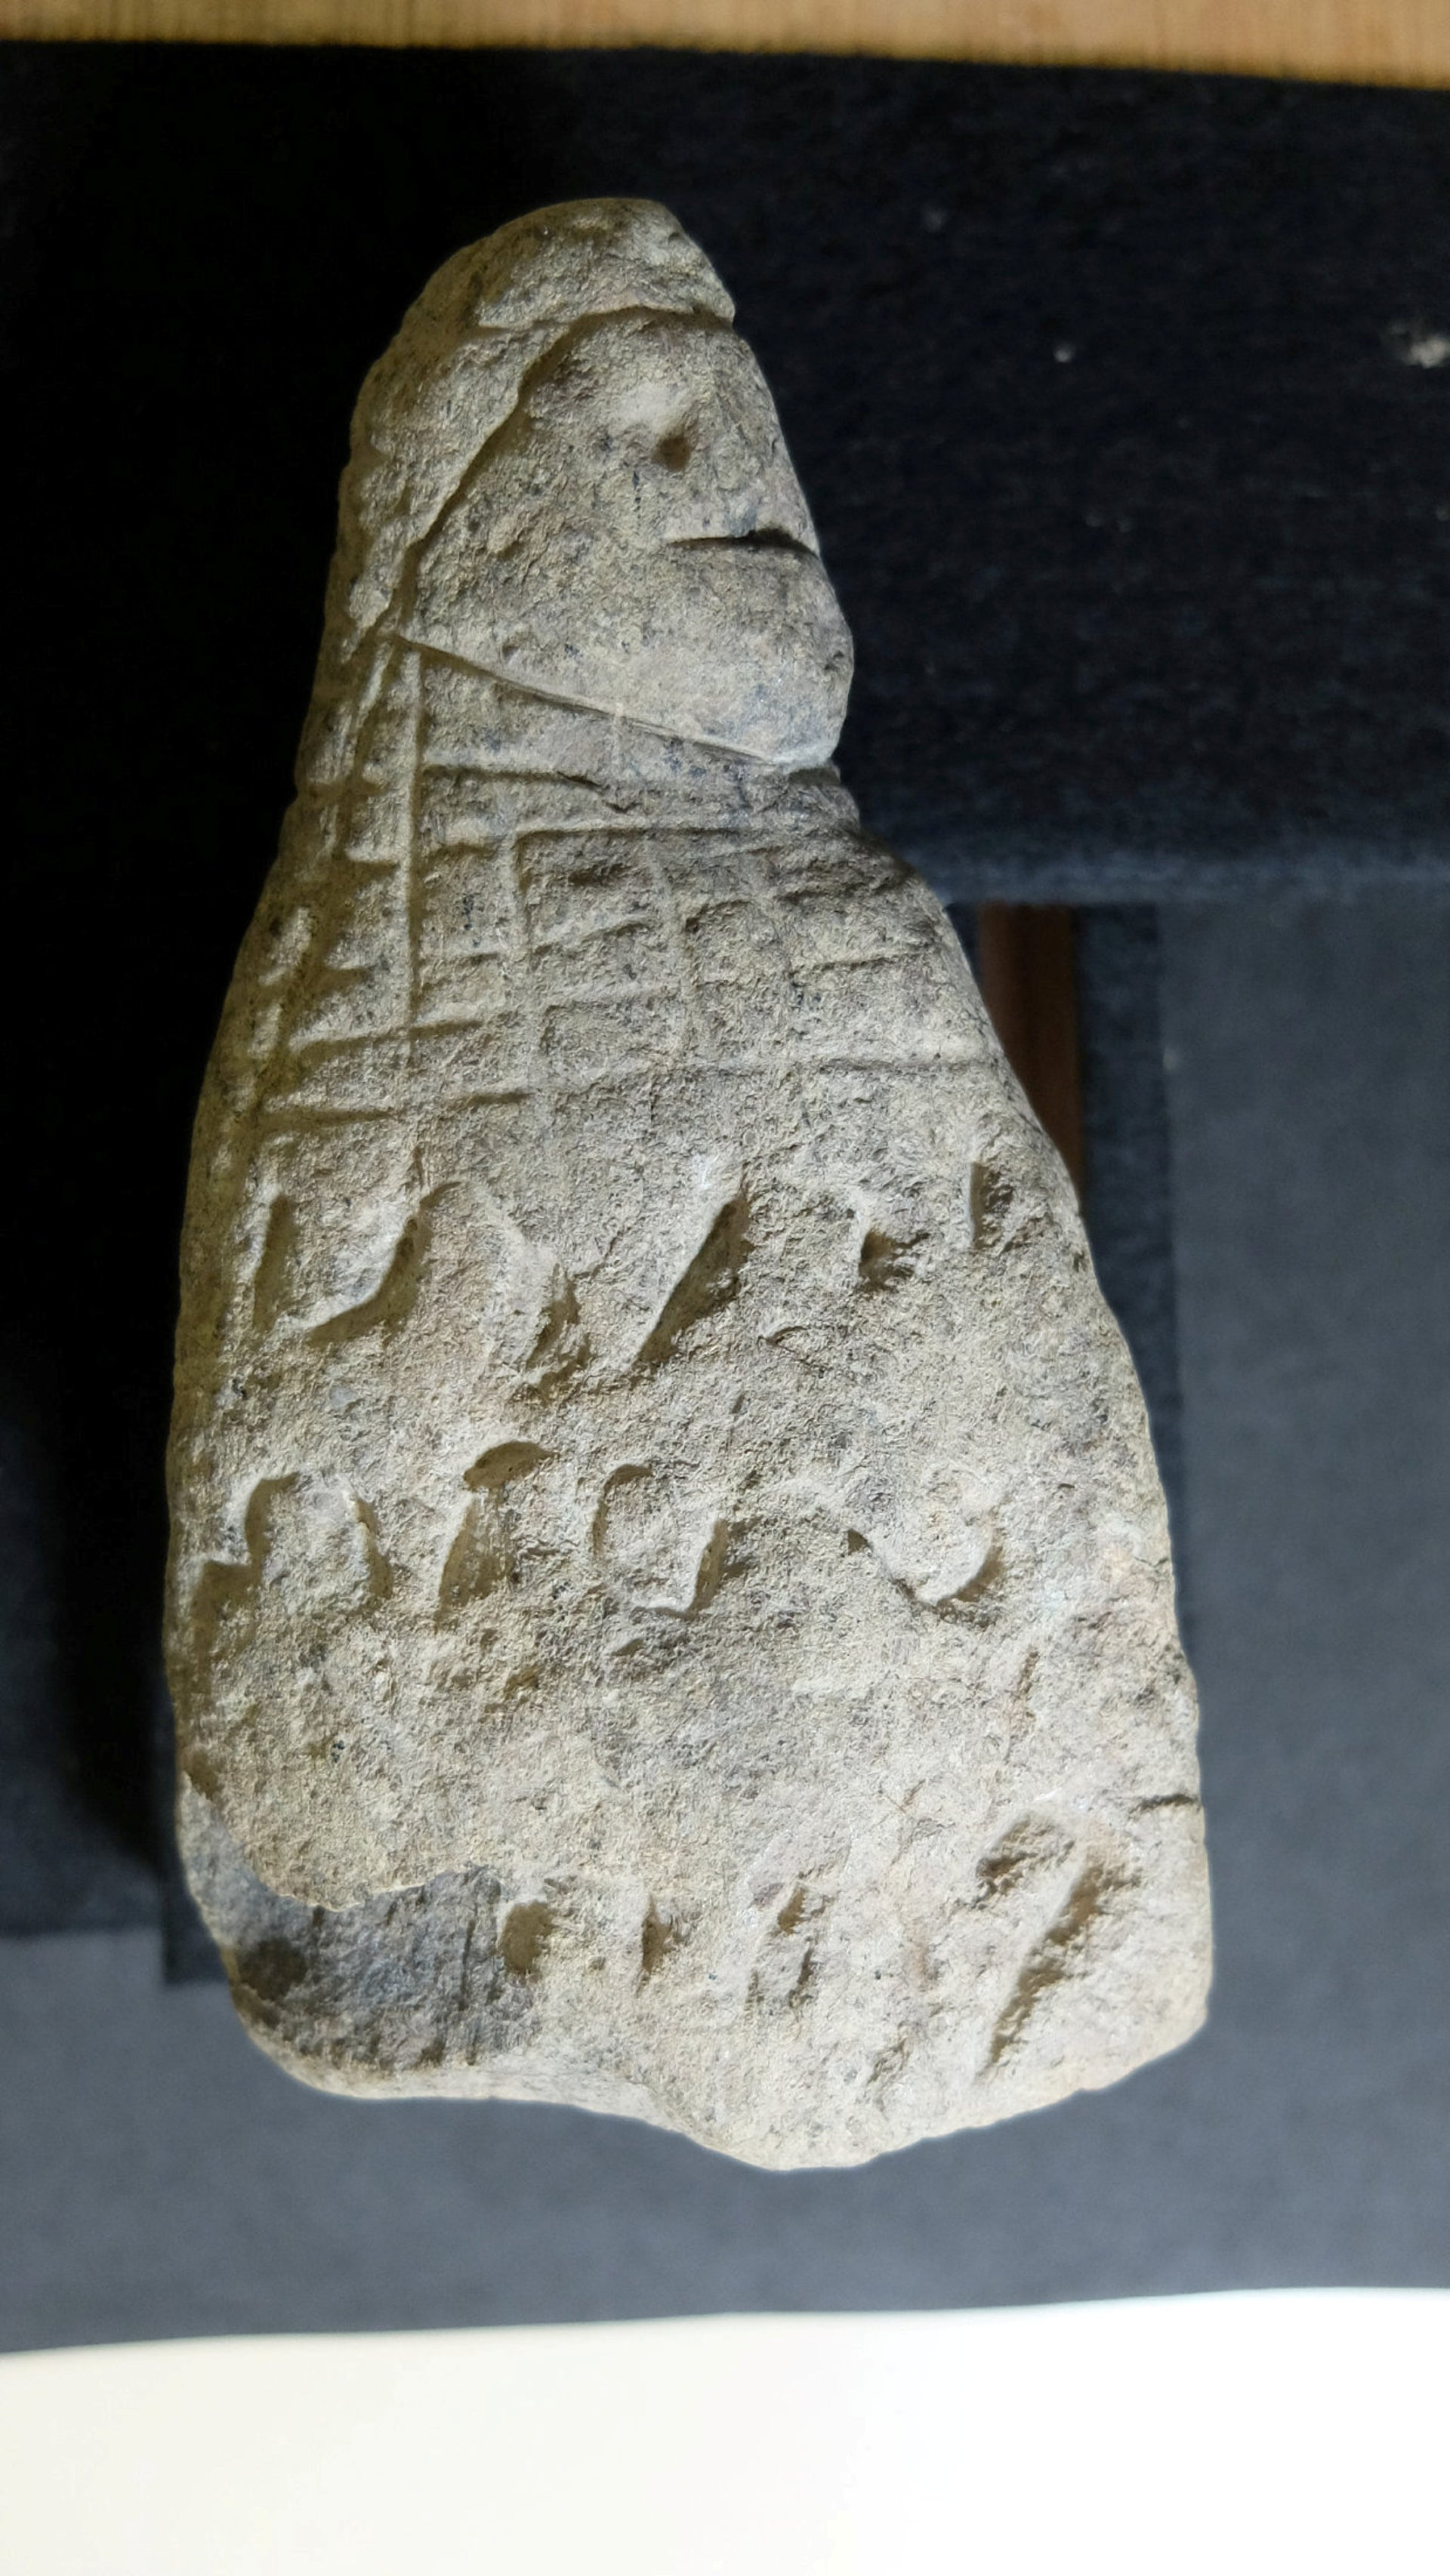 Serpentine figurine with an inscription in an unknown form of writing, found in Puerto Rico